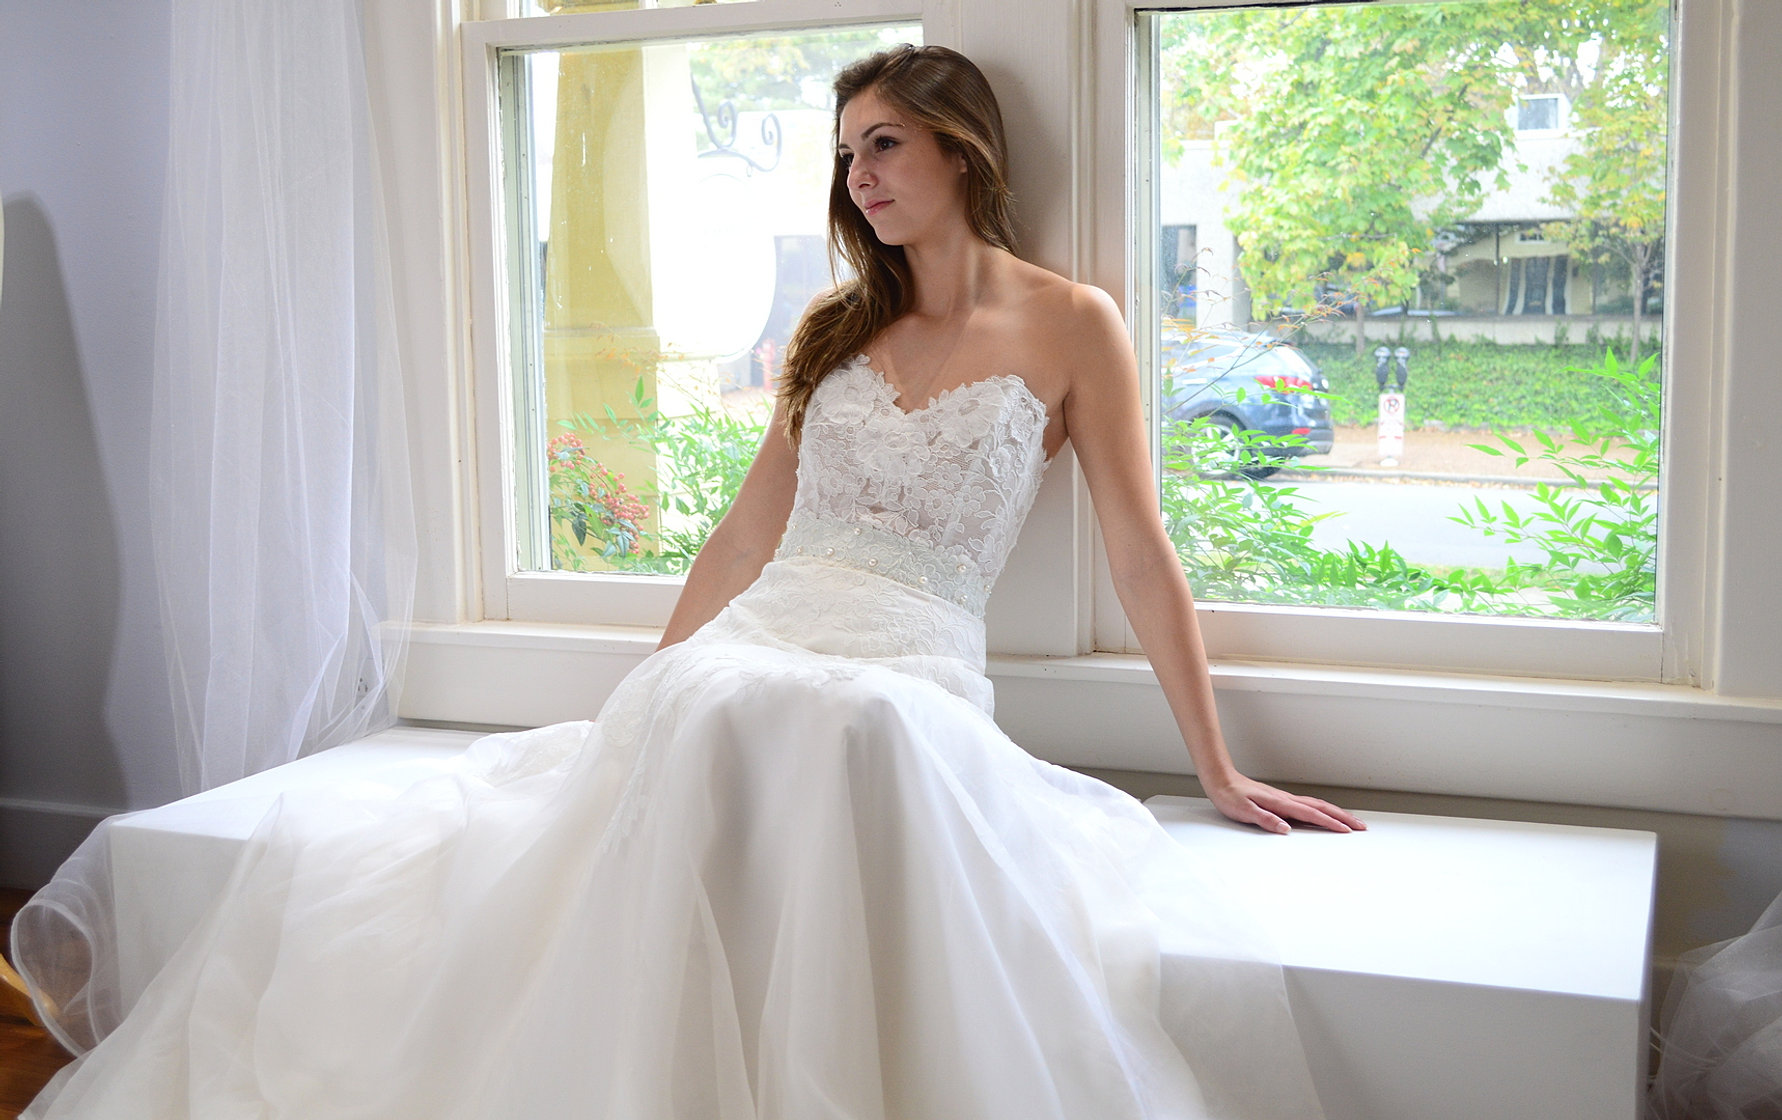 Romantic Creations Bridal | Couture Wedding Gowns | Nashville TN